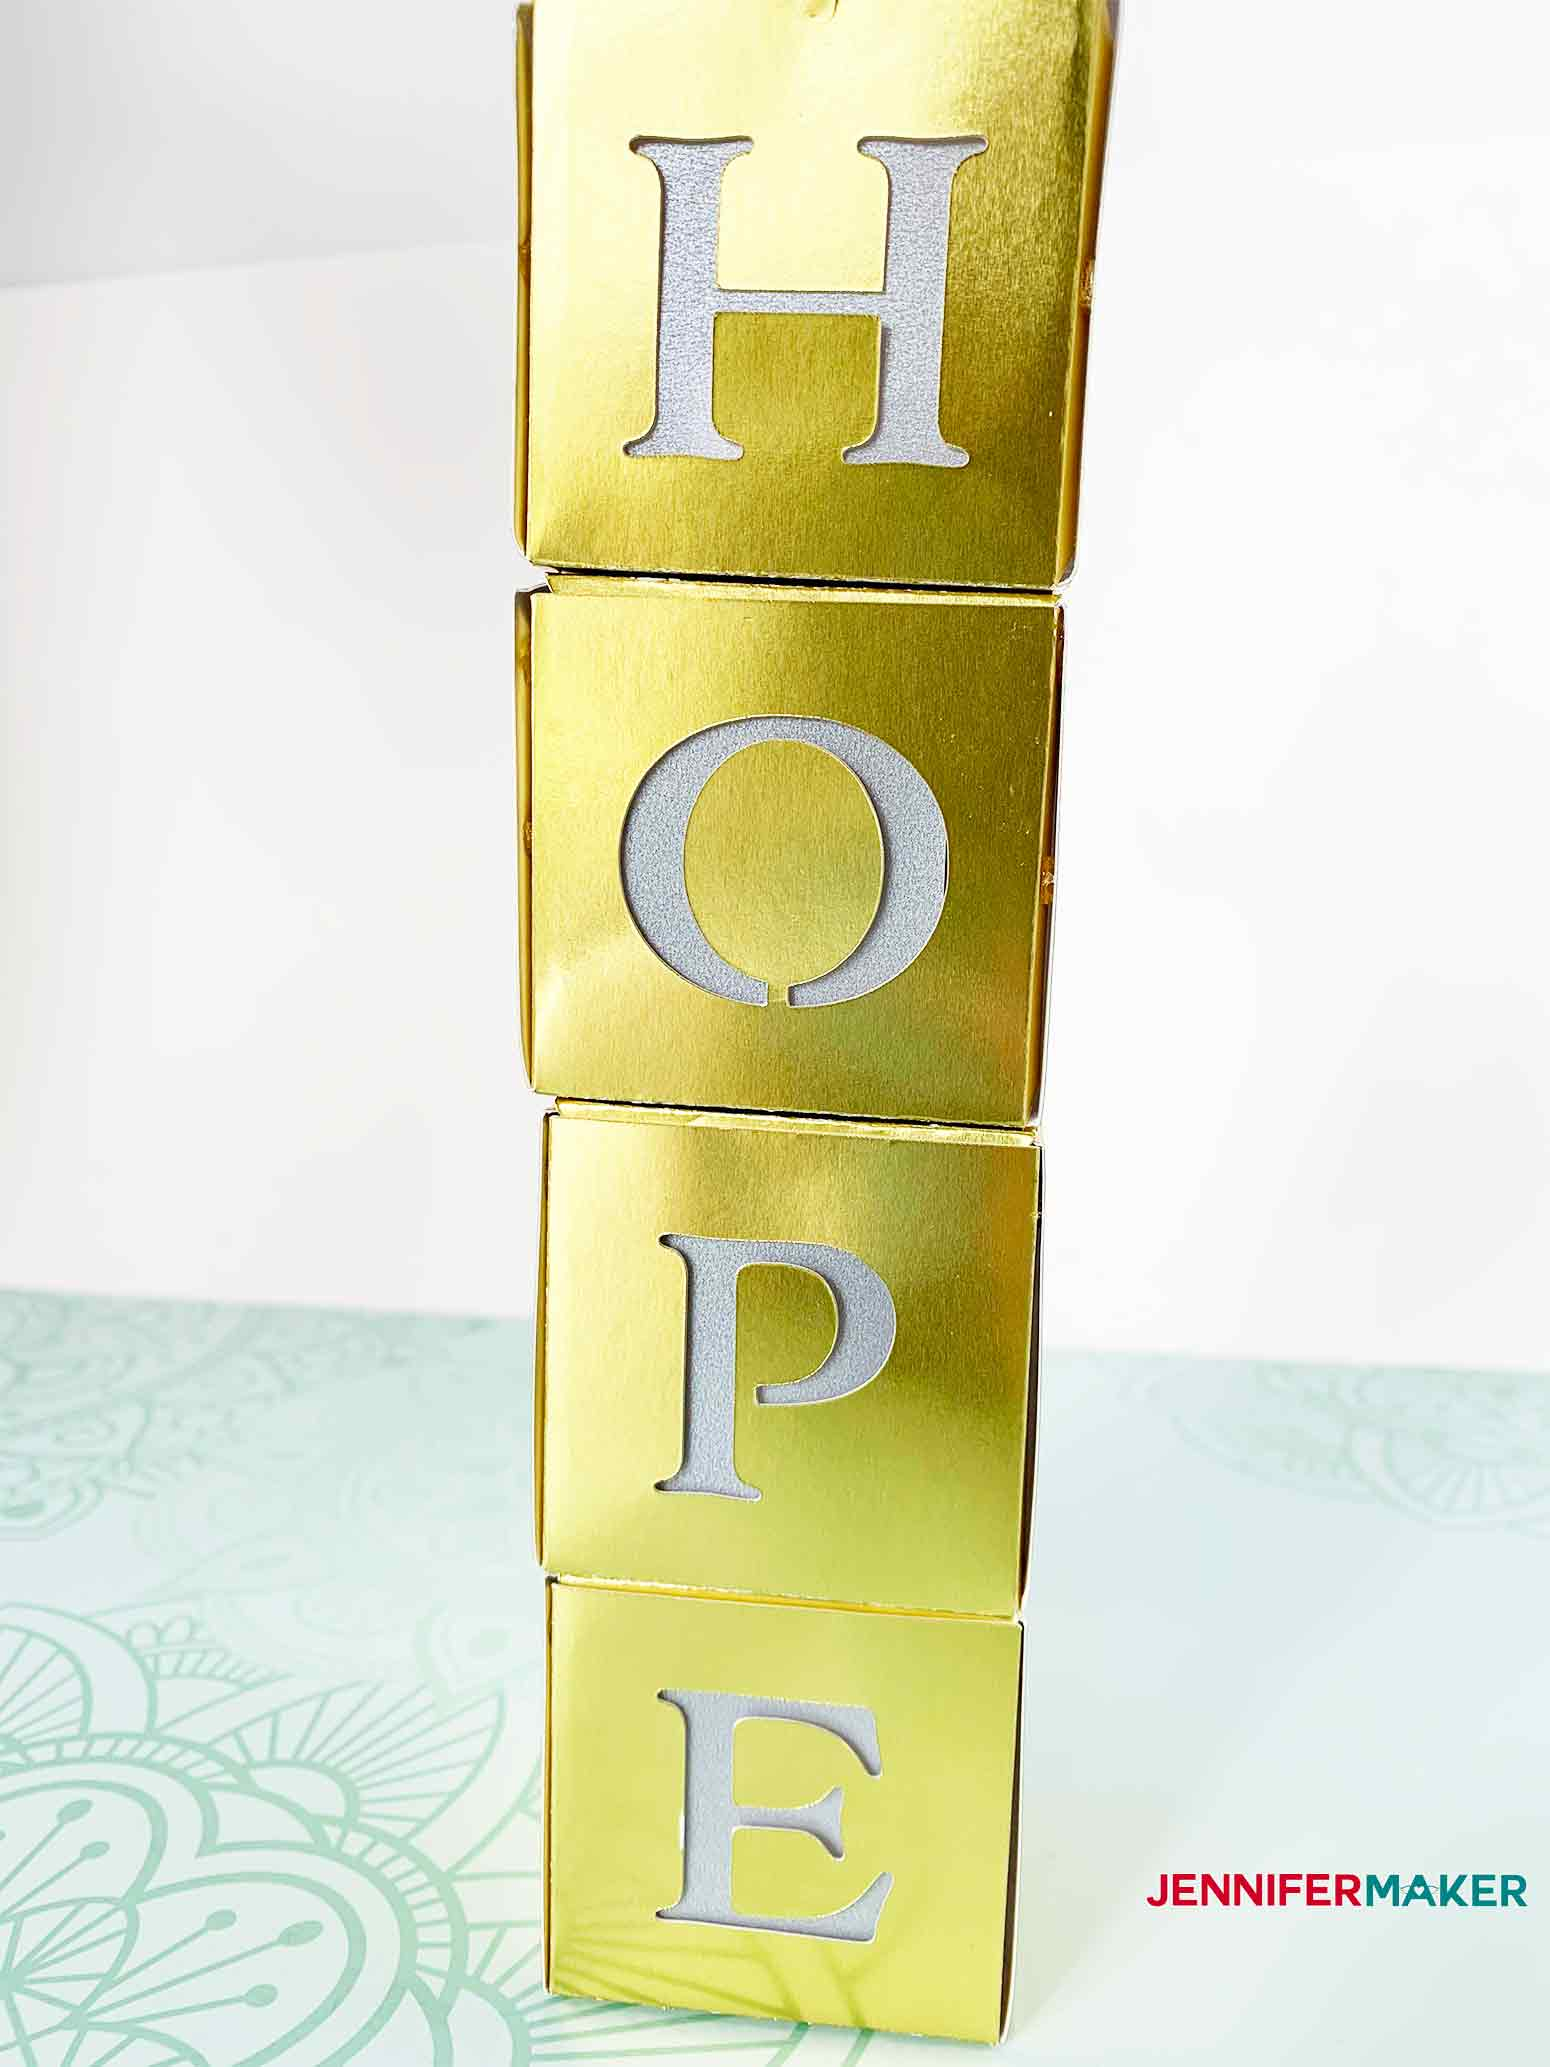 HOPE-Light-Up-Letter-Blocks-JenniferMaker-Stacked-Close-Up